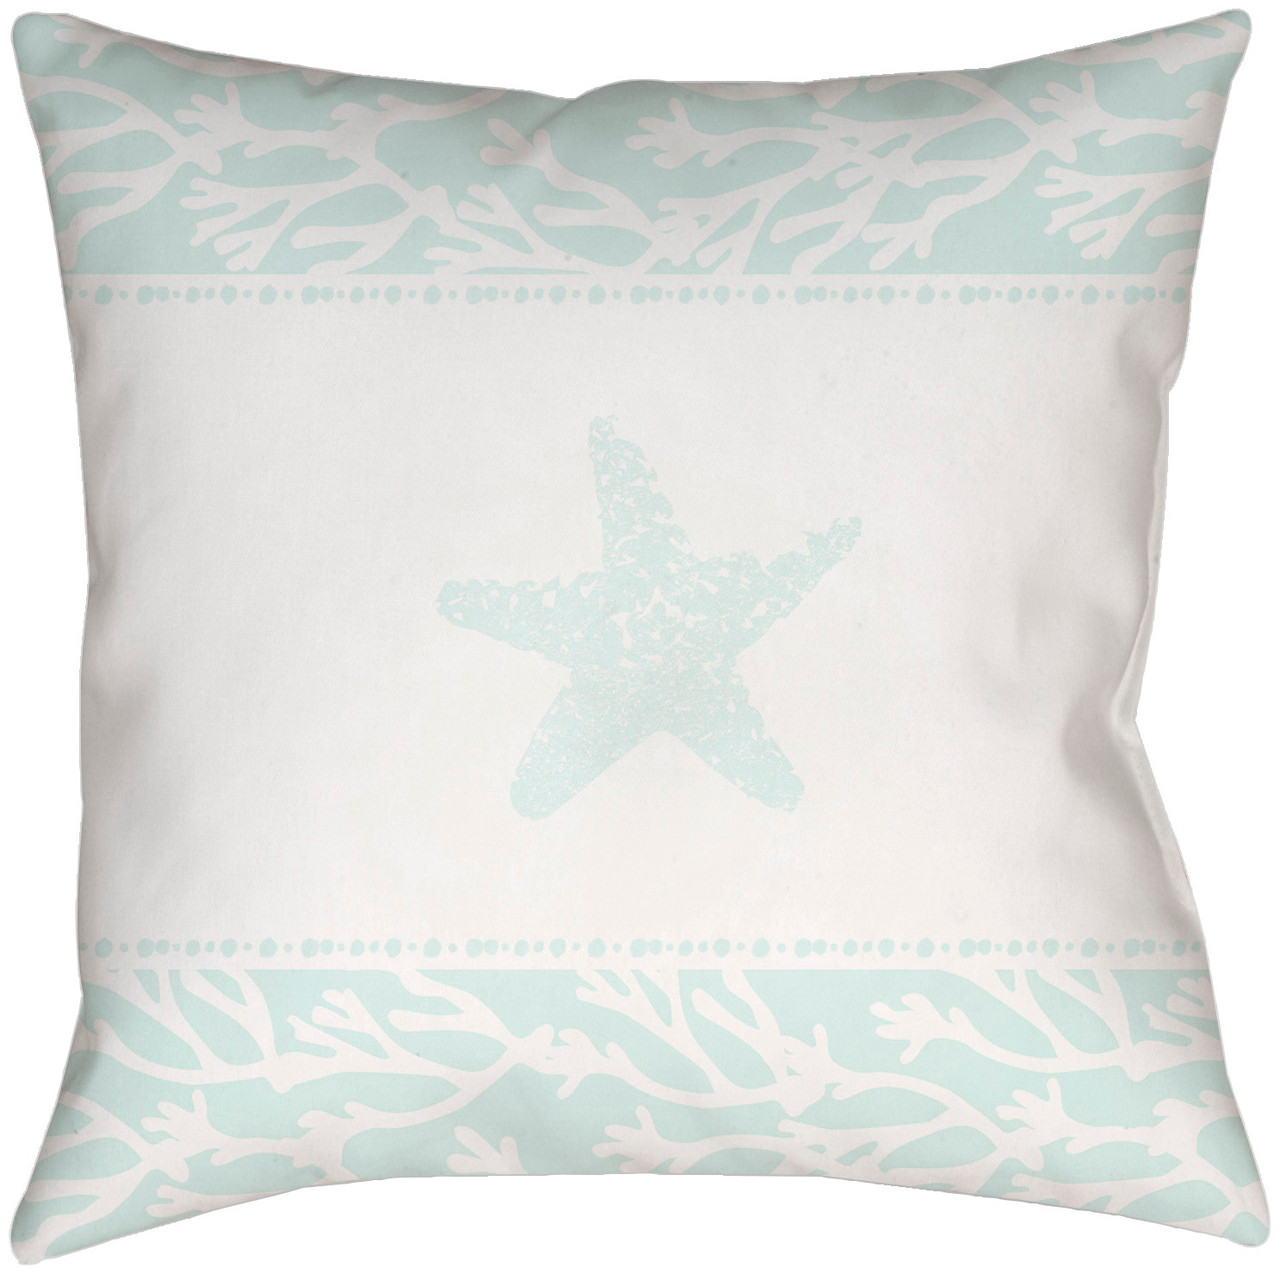 18 Pale Green White Starfish Printed Square Throw Pillow Cover Christmas Central